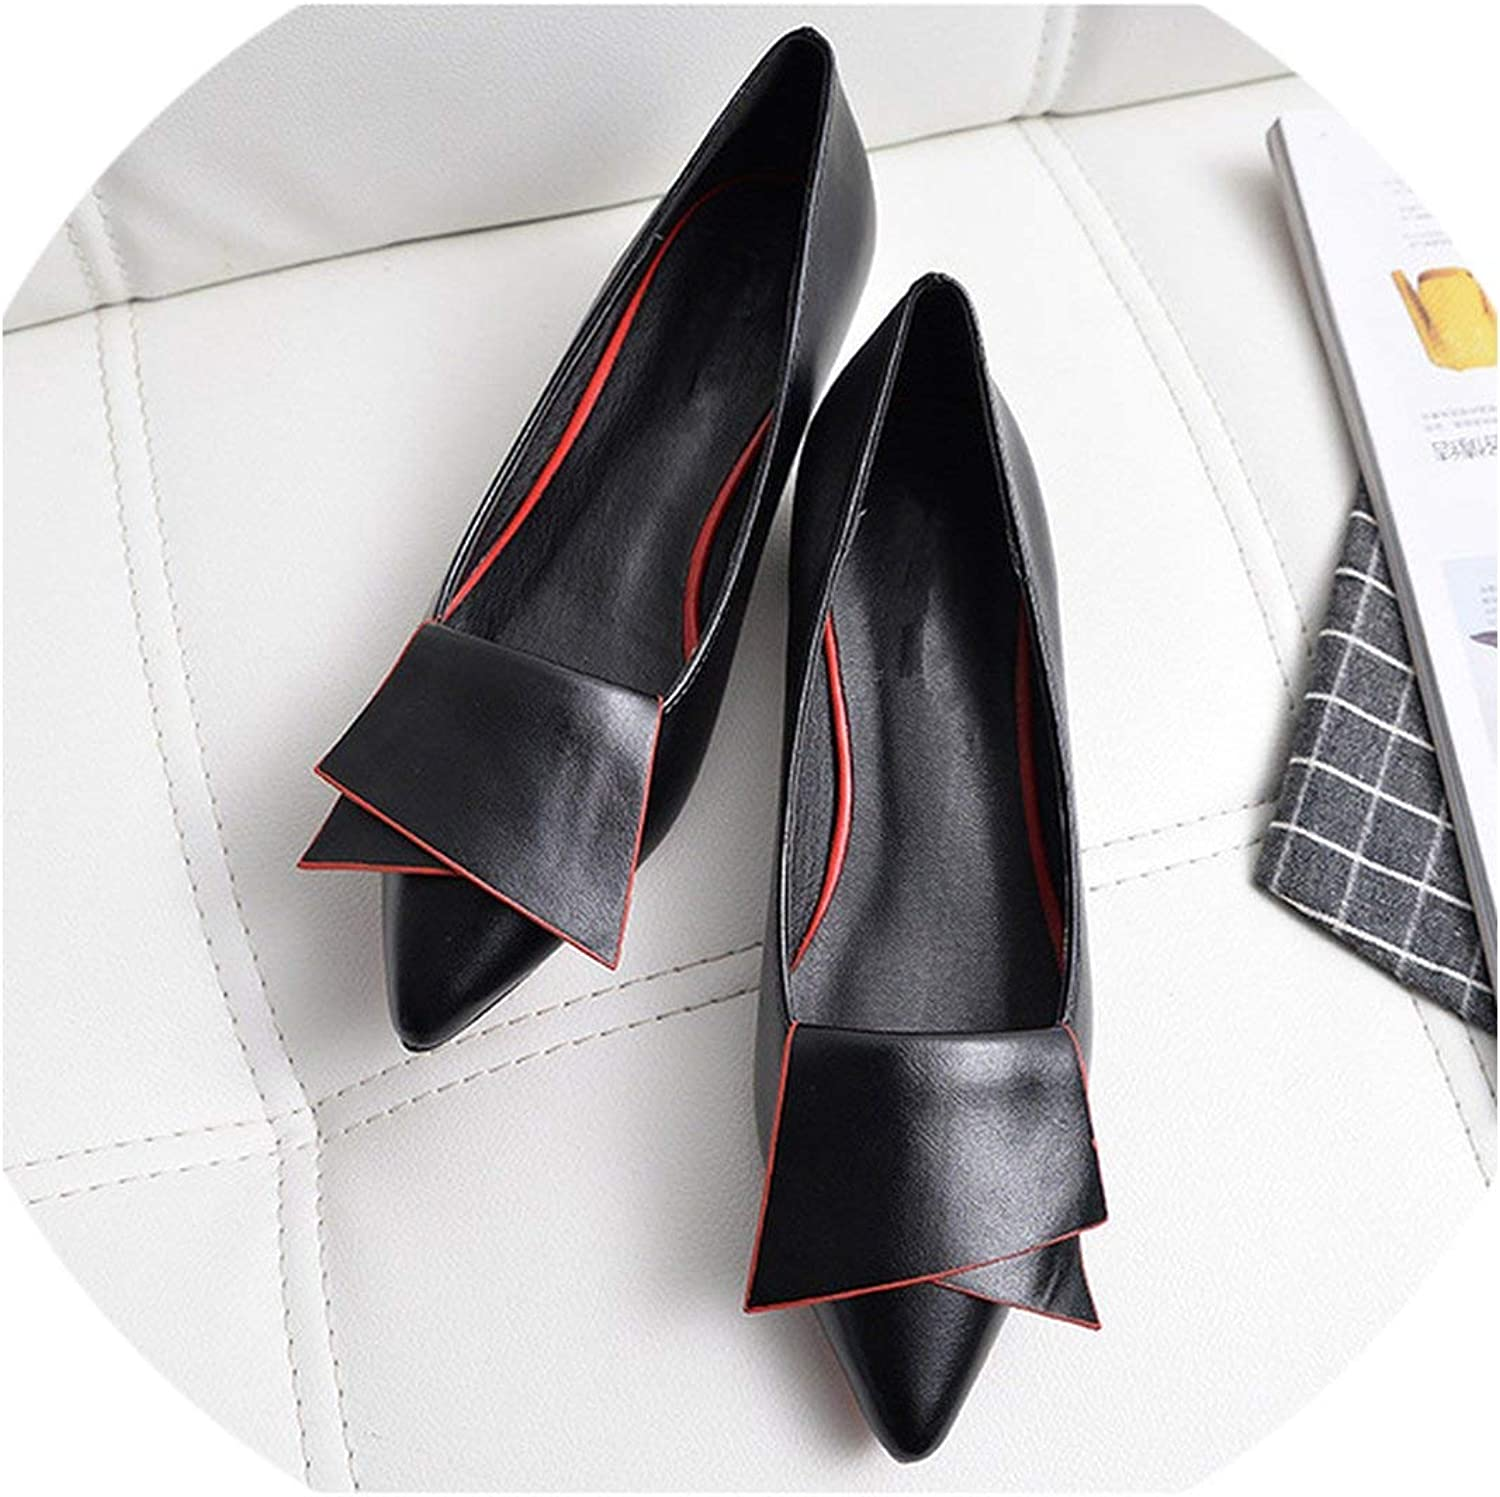 2019 Leather Flat shoes Pointed Toe with Low Woman Loafers Casual shoes